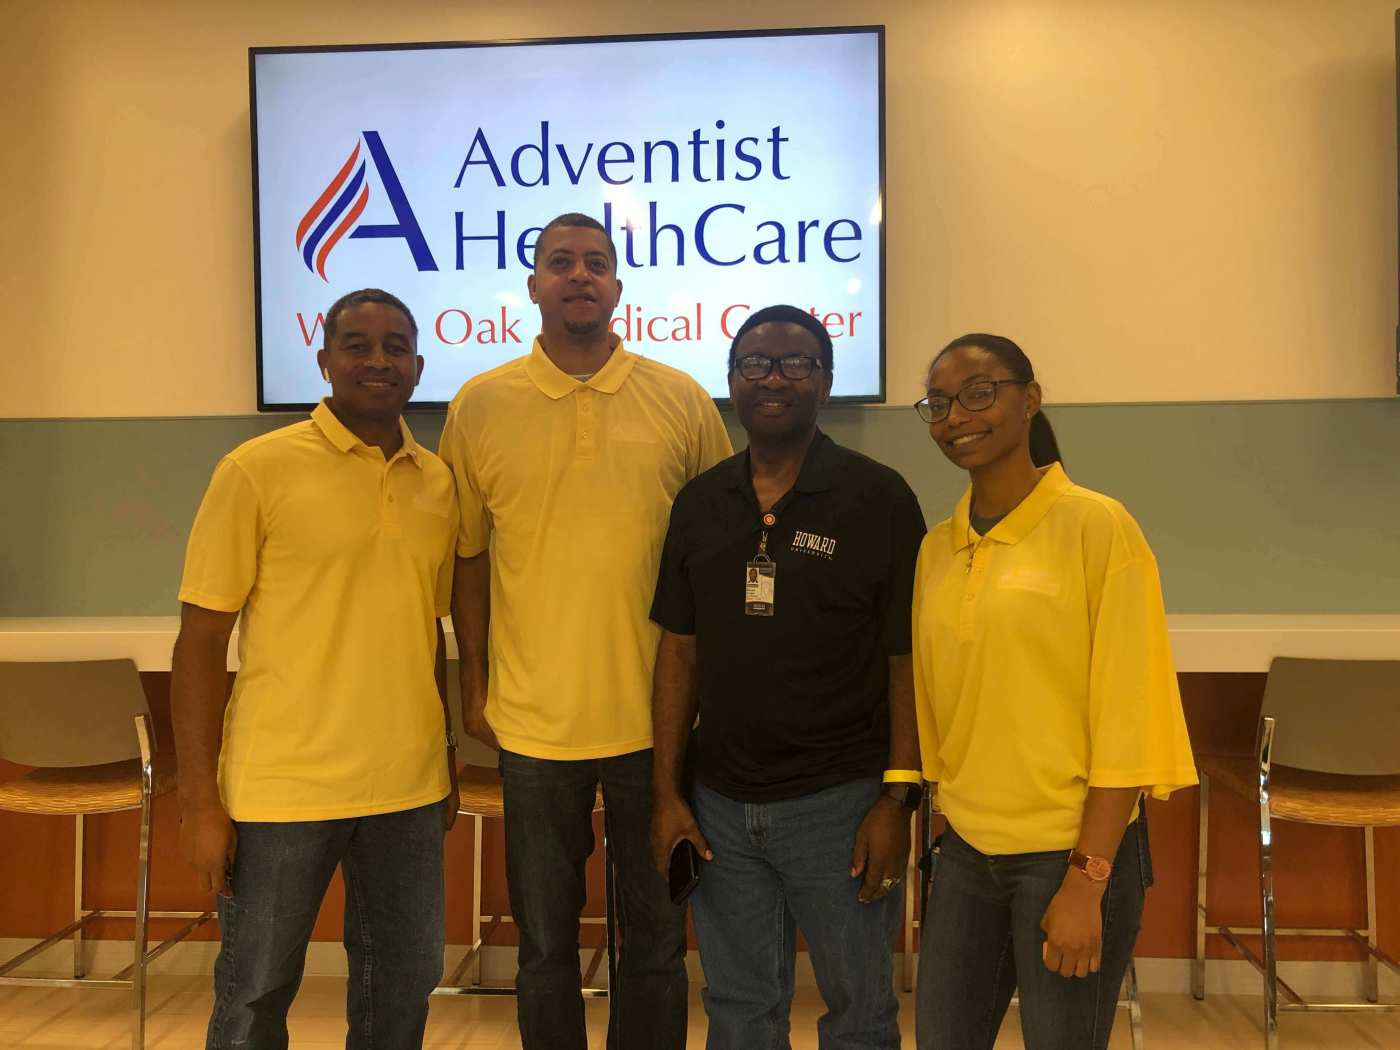 Howard University Health Science Professors with student at Adventist HealthCare Medical Center in White Oak - Maryland .JPG